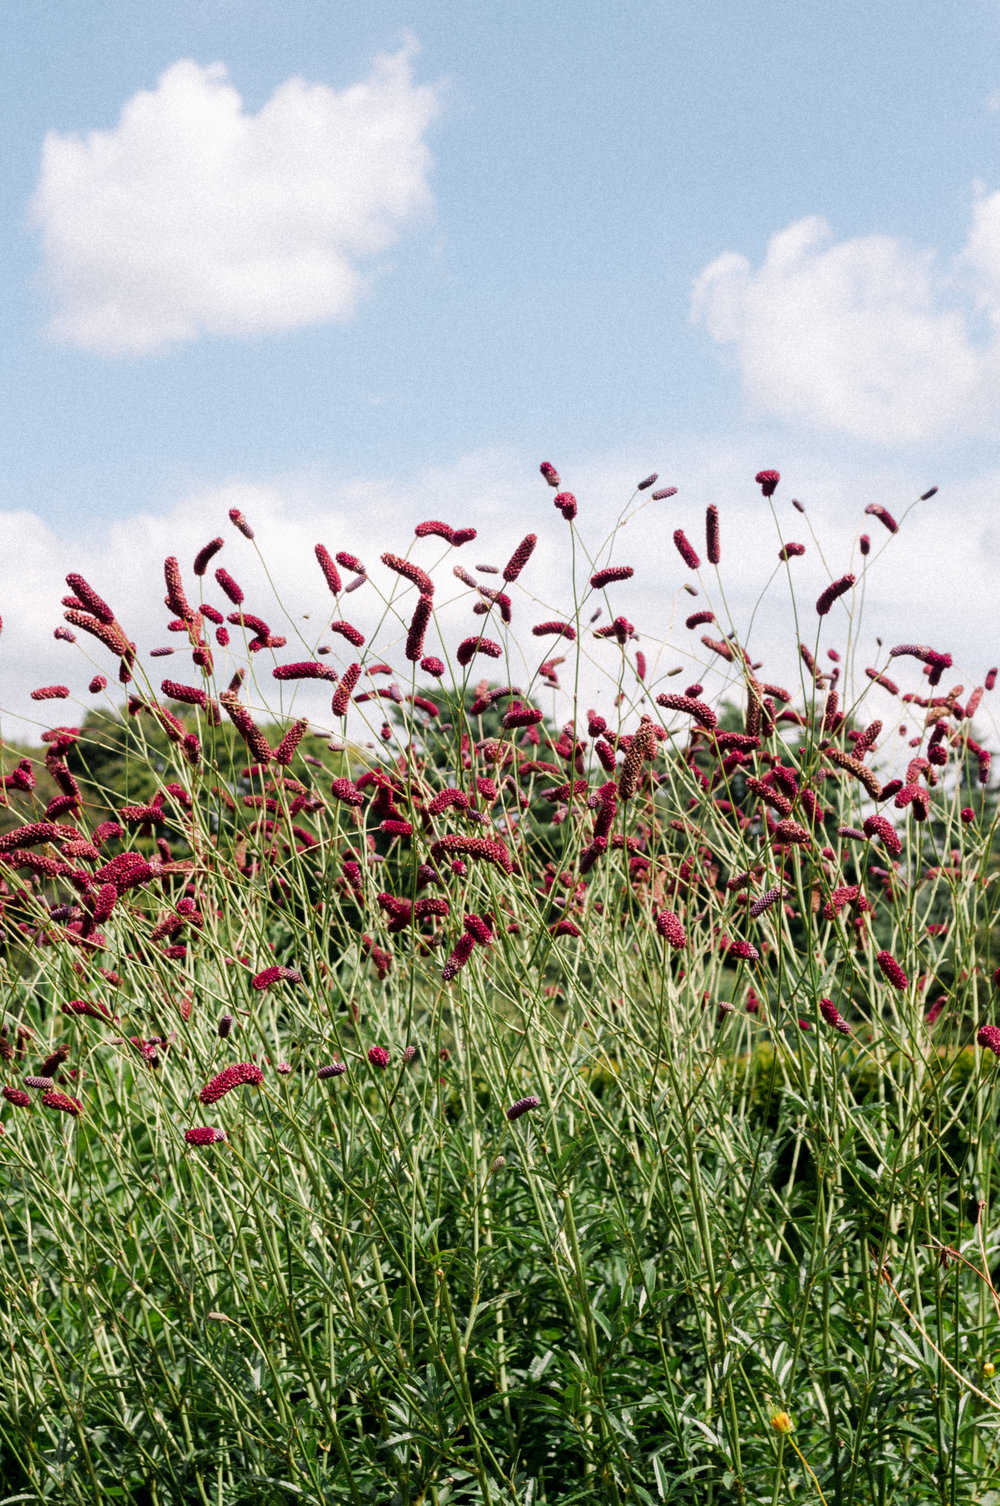 Sanguisorba officinalis (we think) or Greater Burnet - this one we would love confirm on if anyone has any ideas!